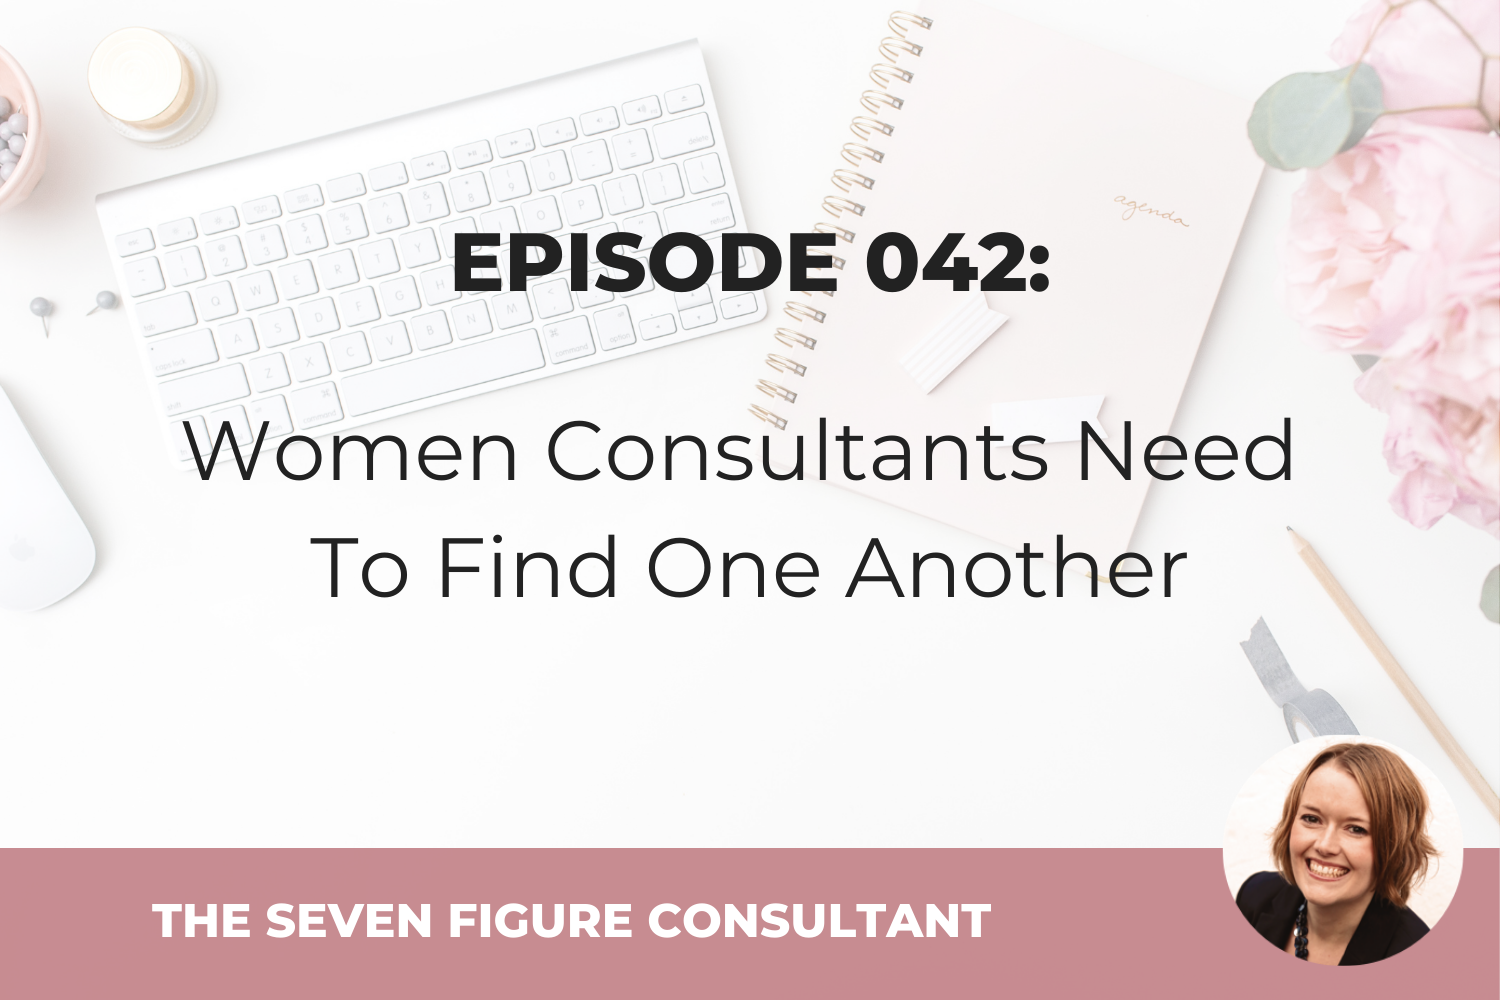 Episode 042: Women Consultants Need To Find One Another